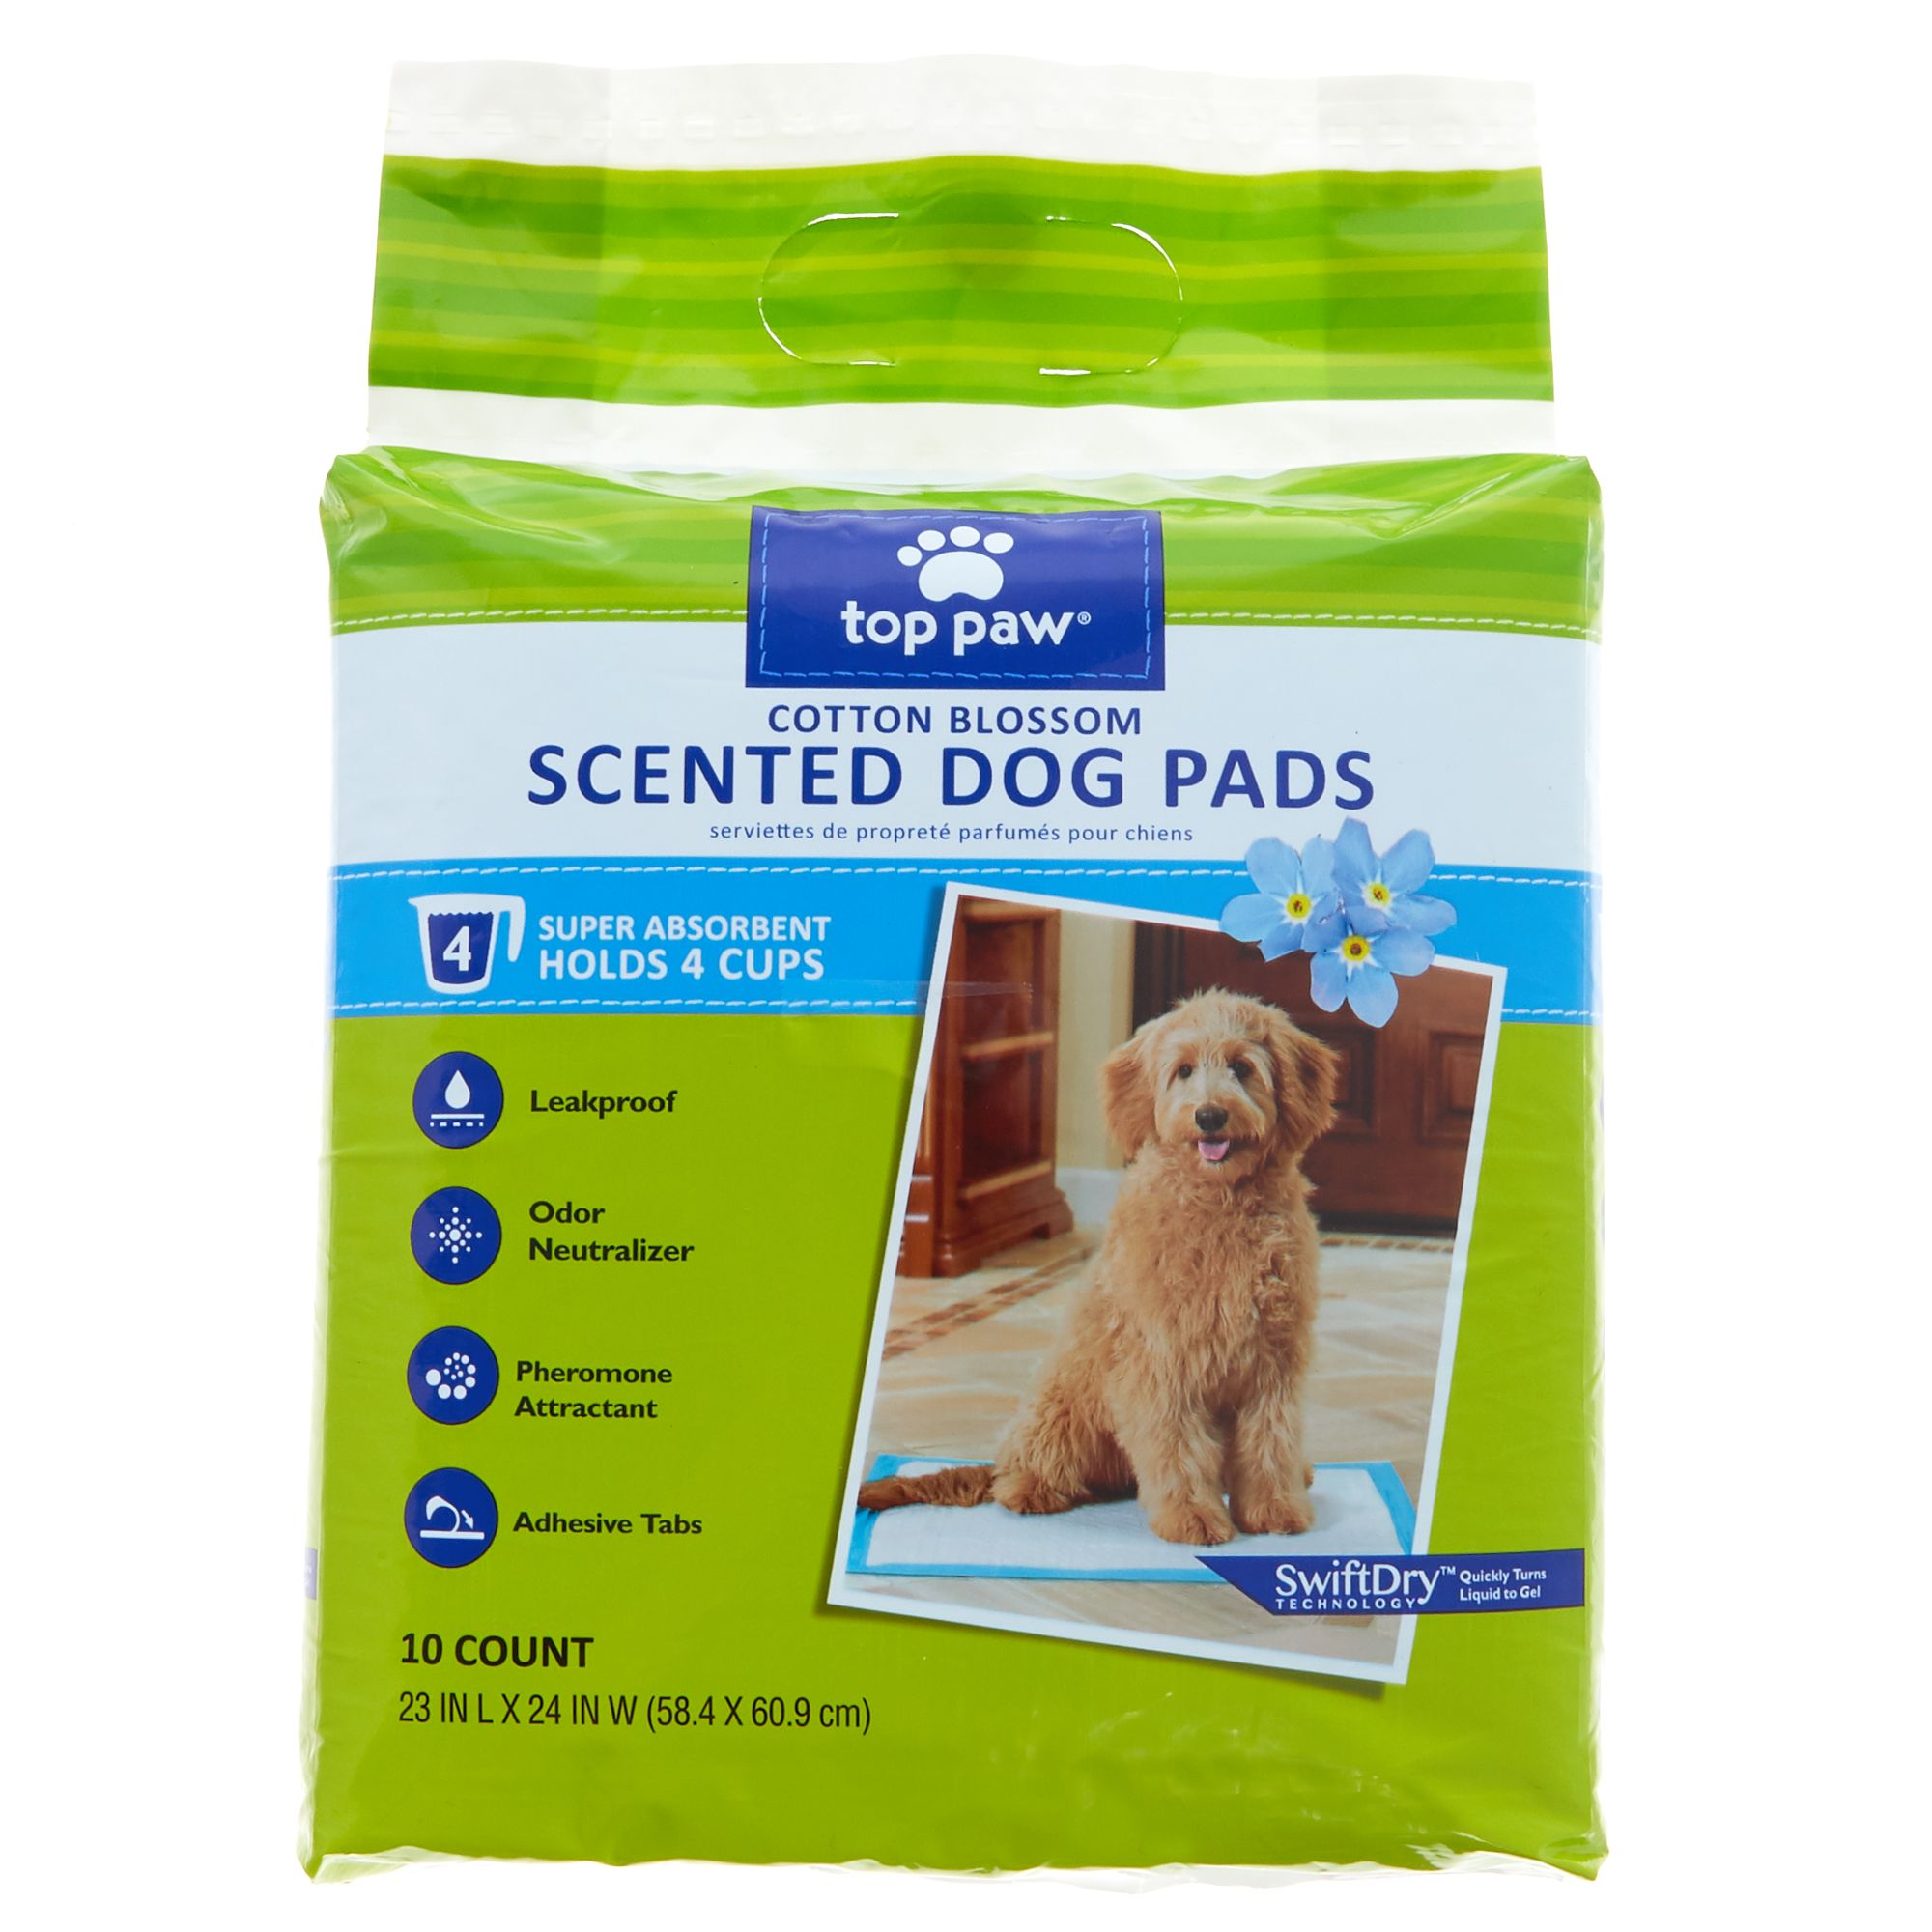 Top Paw Scented Dog Pads size: 10 Count 5270600